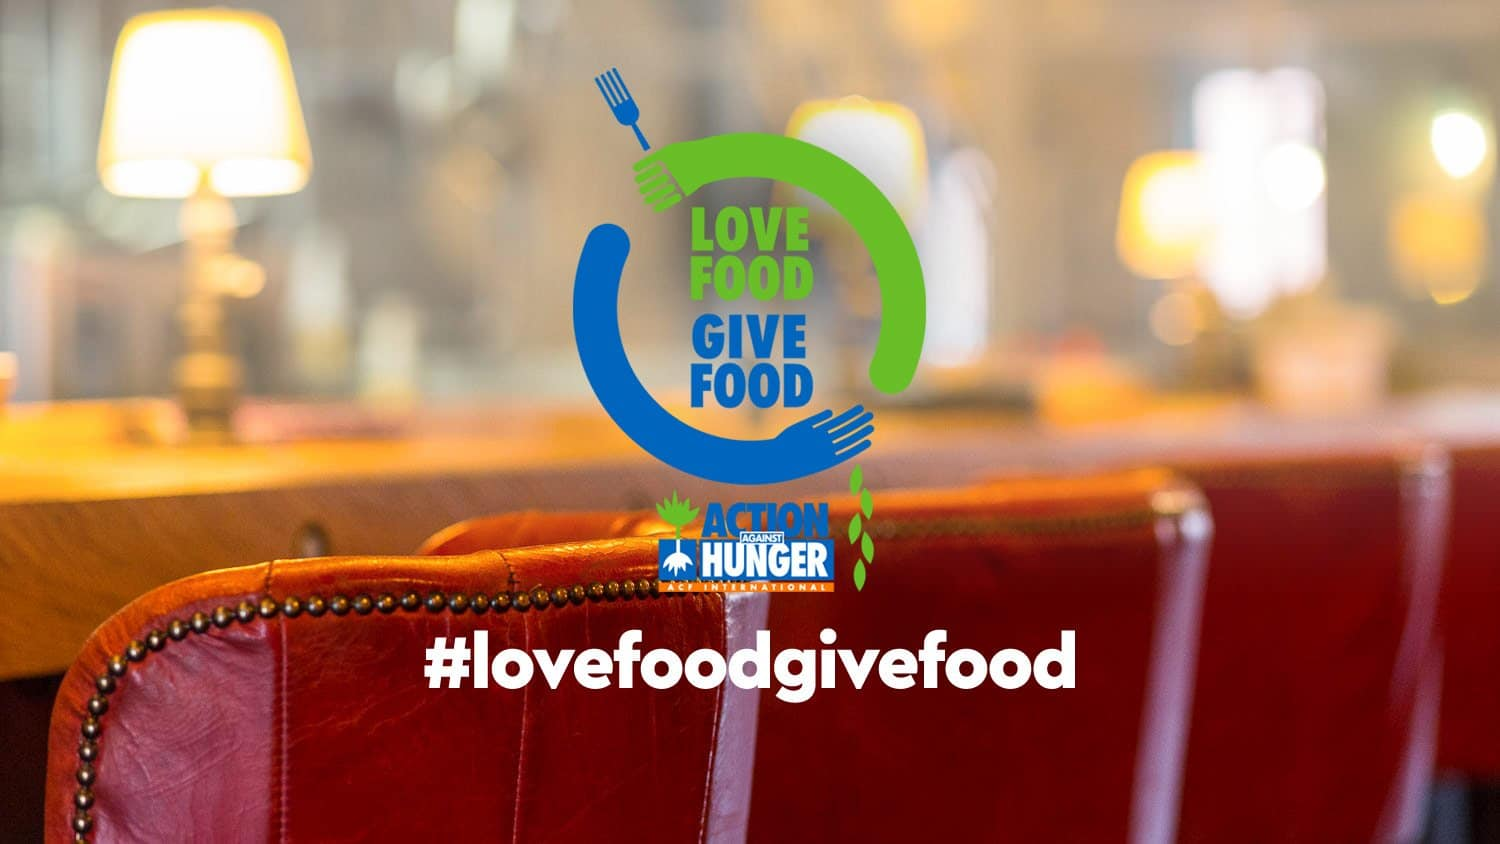 lovefoodgivefood campaign banner action against hunger